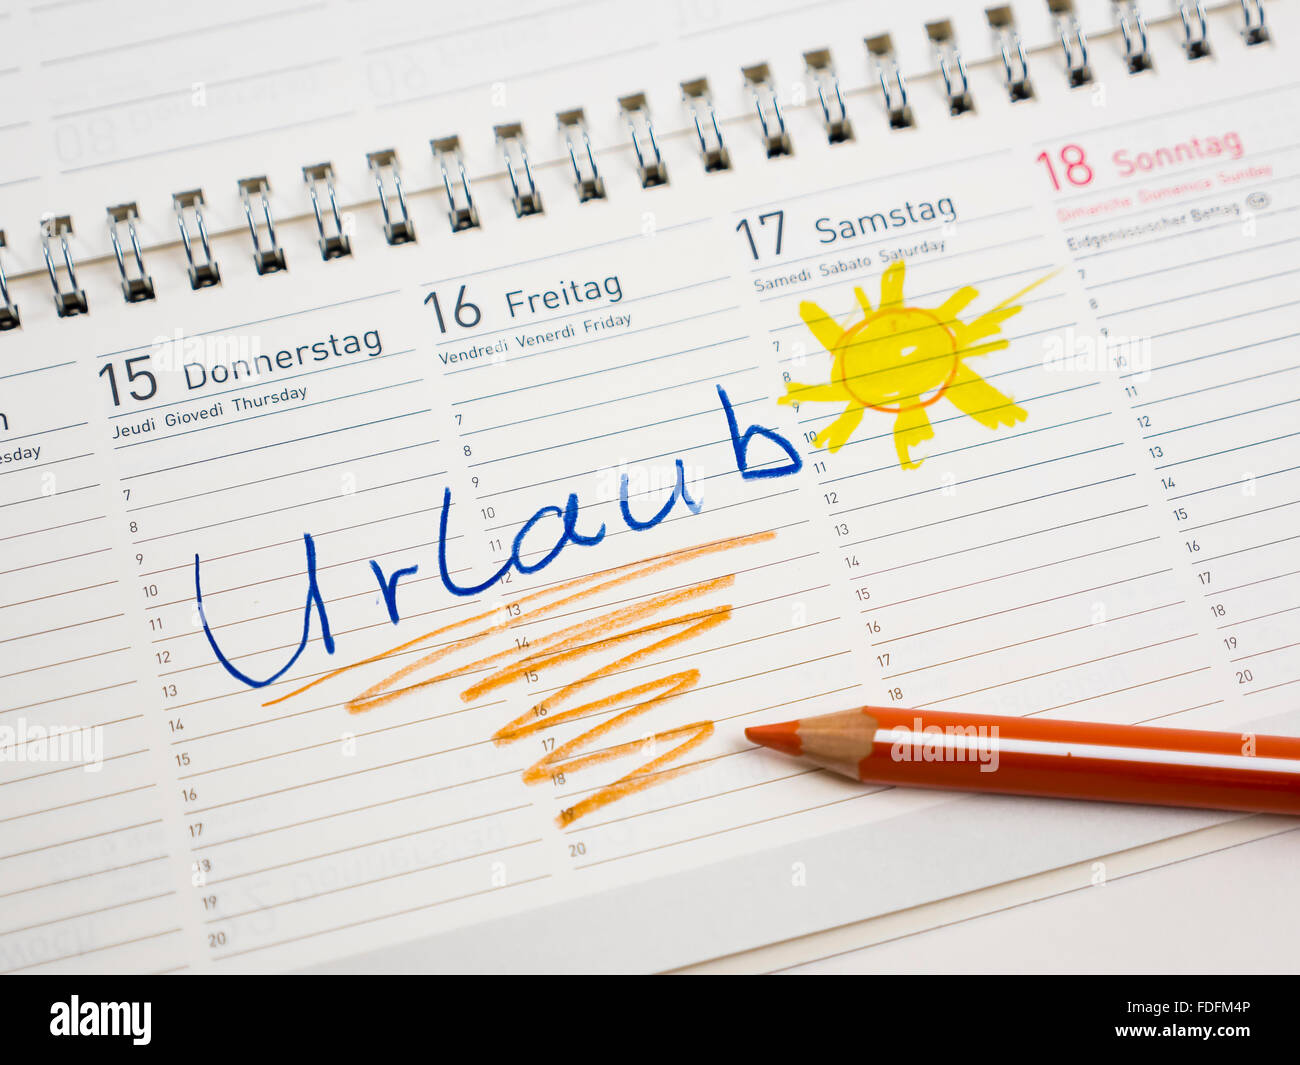 Calendar with date, Urlaub or holidays, vacation planning - Stock Image